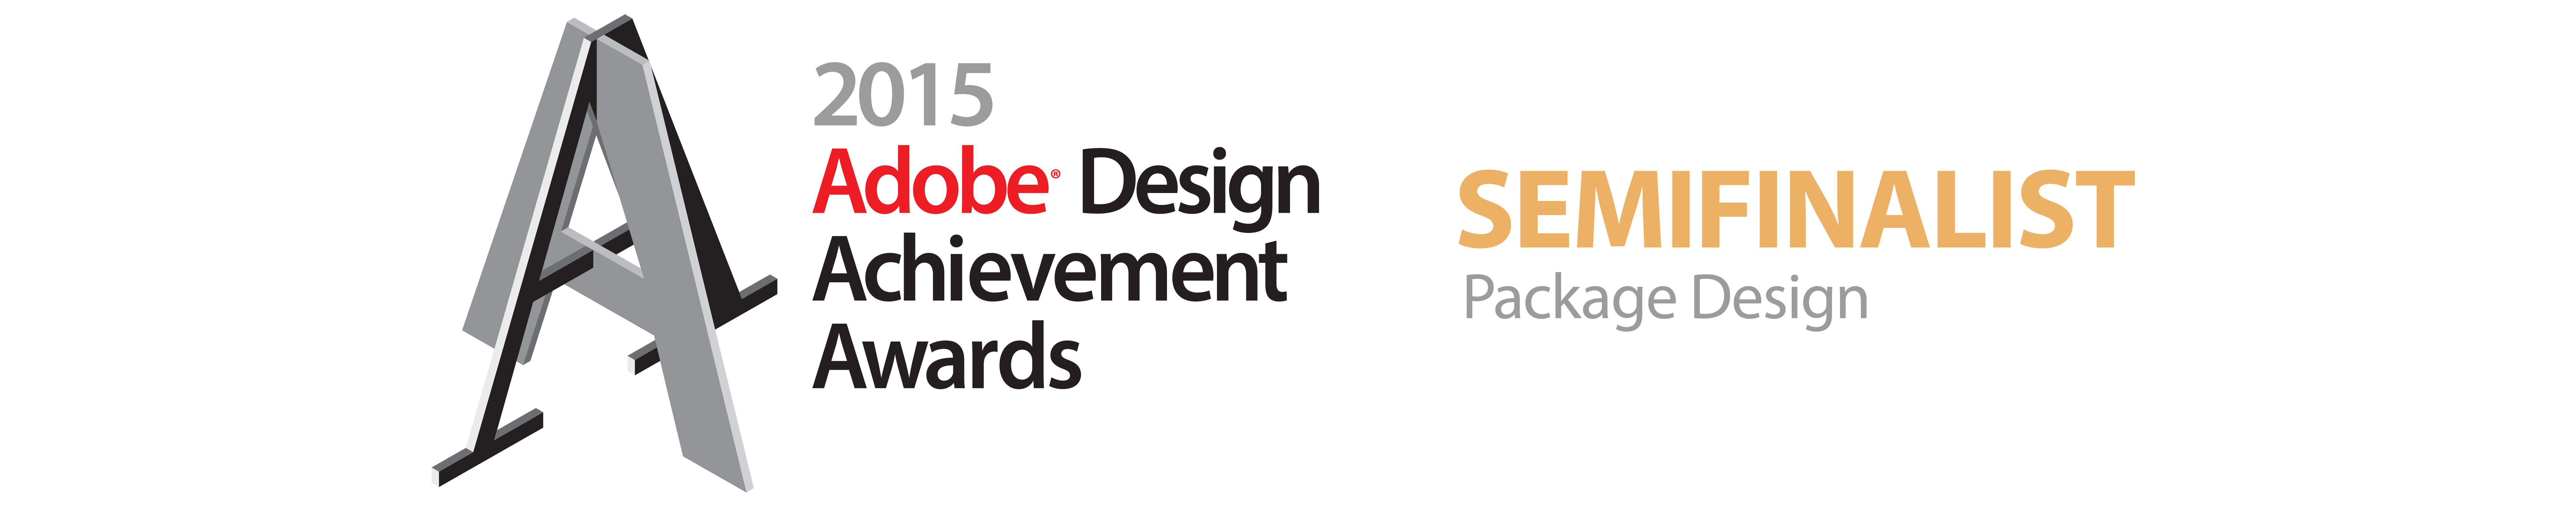 2015 adobe design achievement awards semifinalist packaging design banner